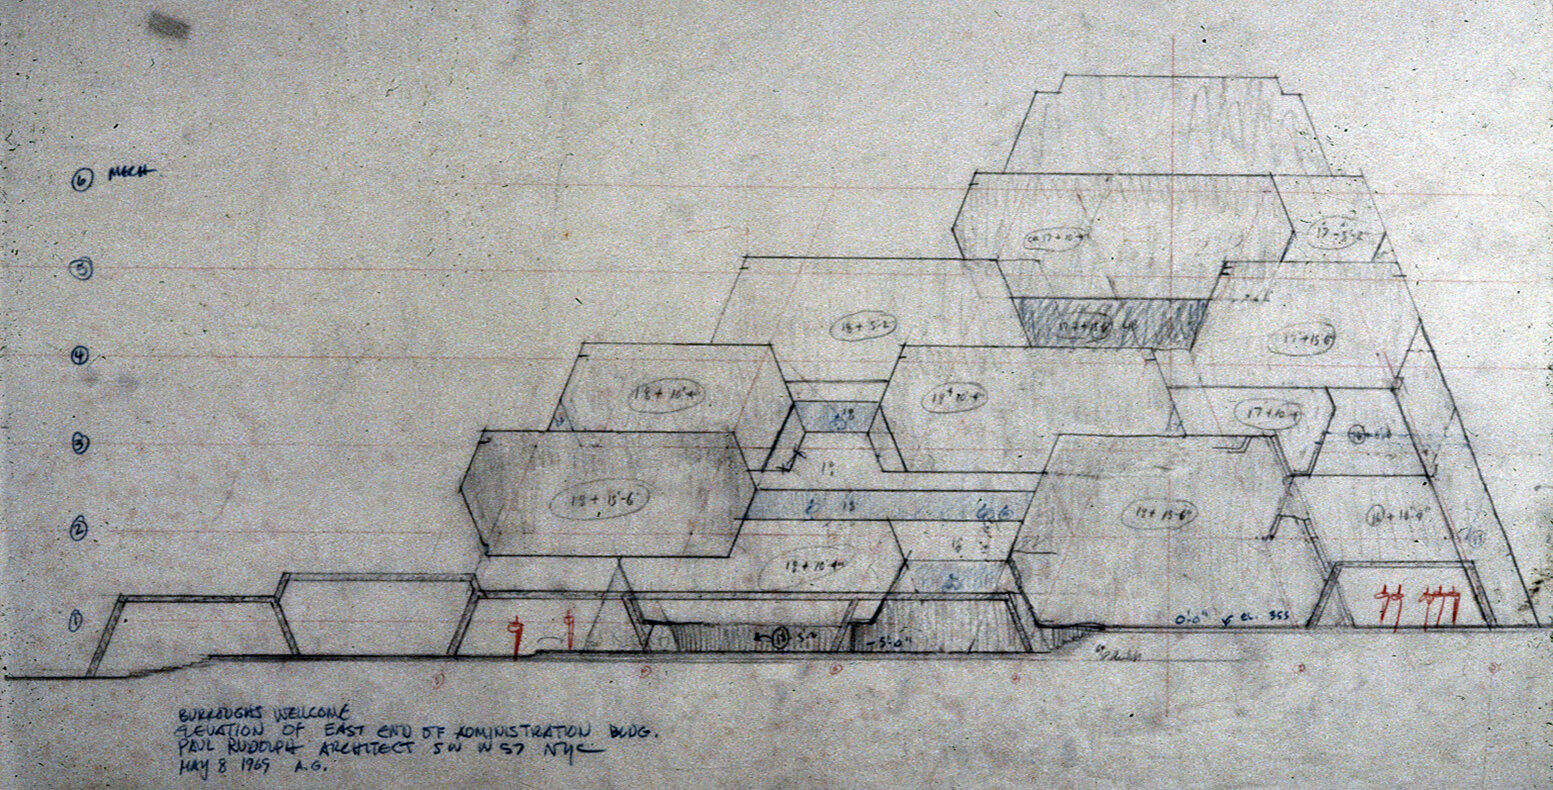 Burroughs Wellcome Company, Research Triangle Park, North Carolina. Elevation of East End of Administration Building. Sketch. Dated May 08, 1969.